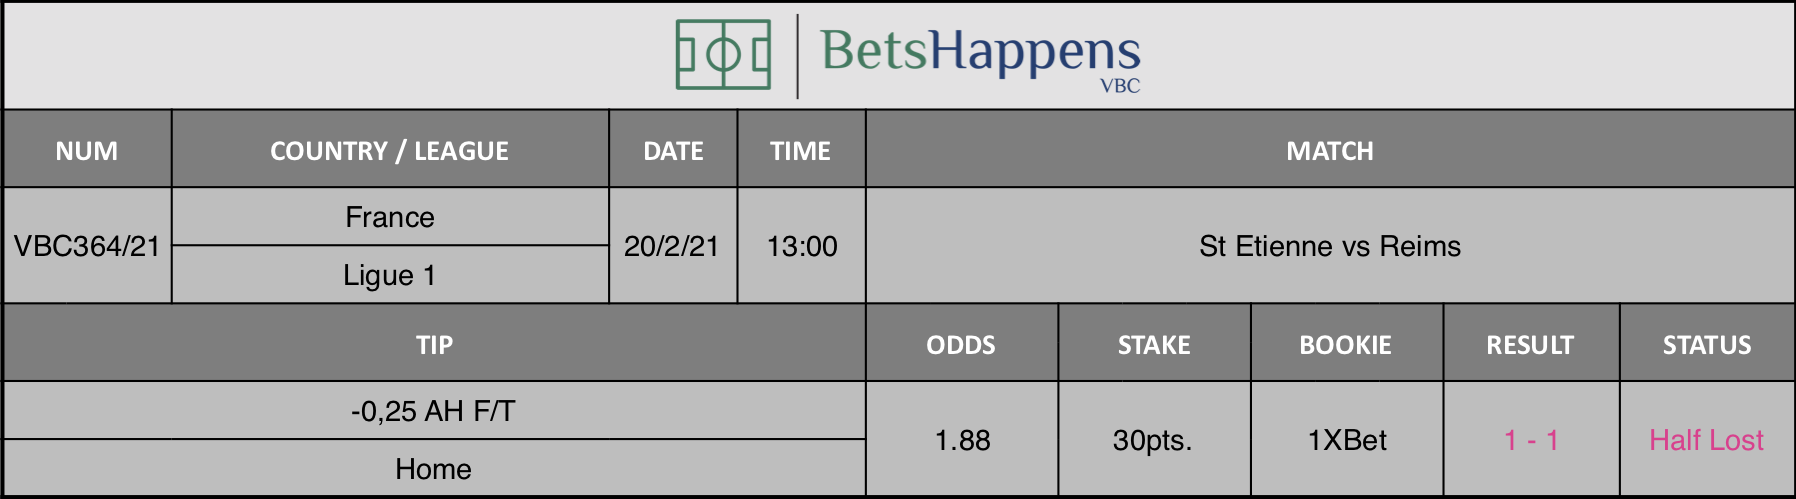 Results of our tip for the St Etienne vs Reims match where -0,25 AH F/T Home is recommended.